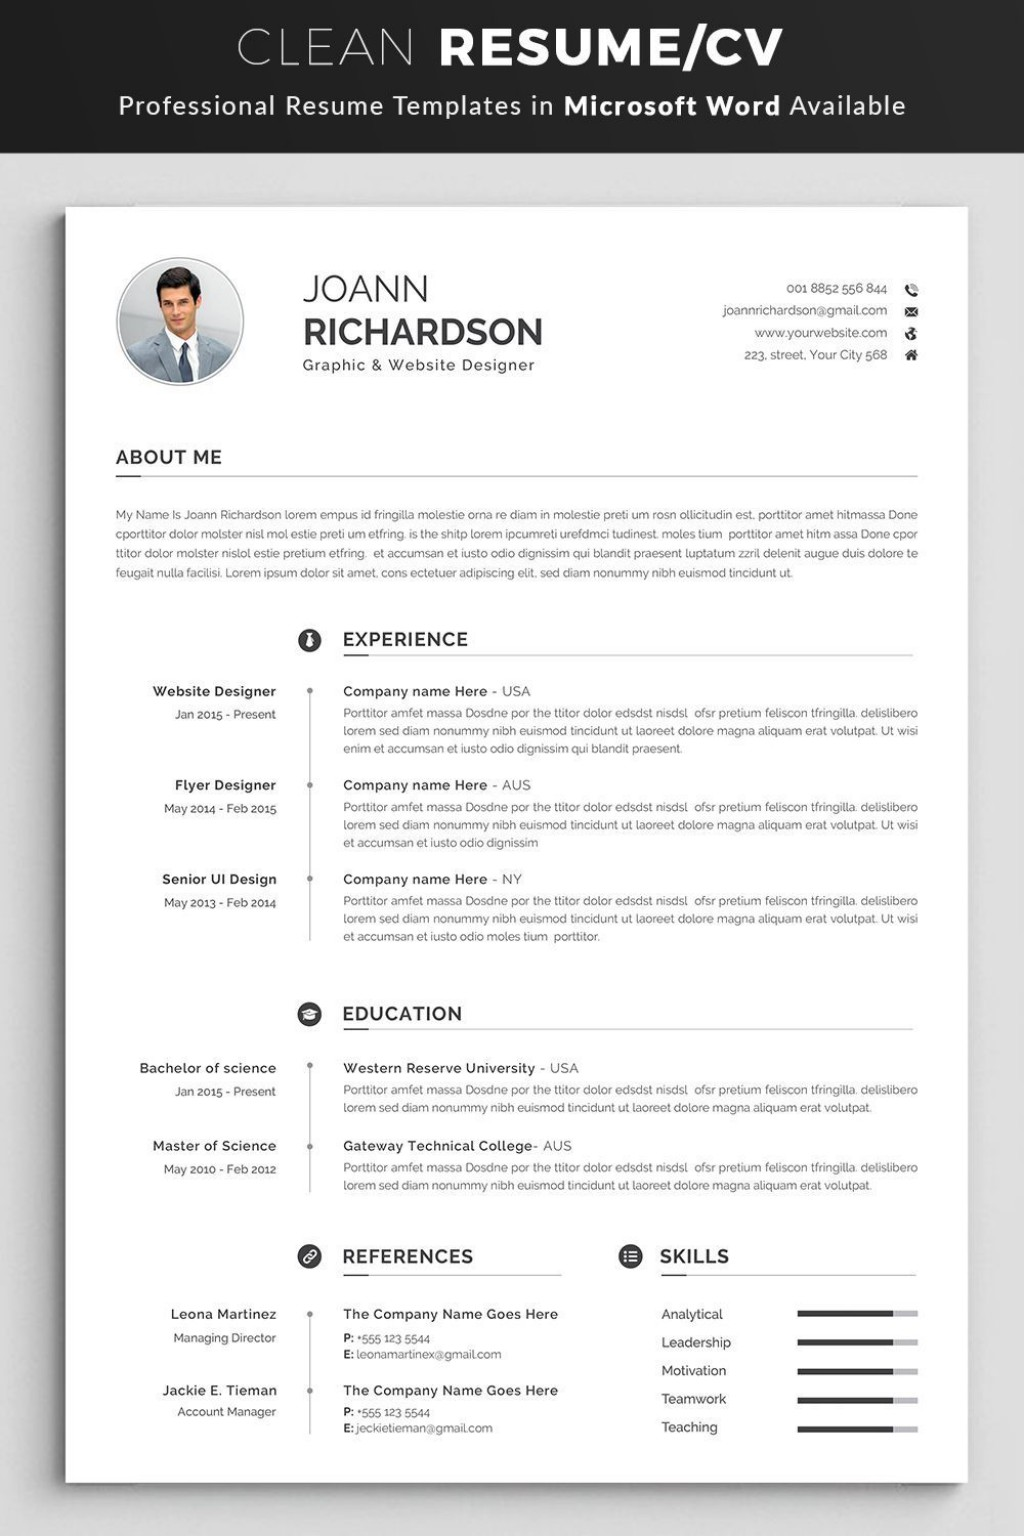 000 Excellent Make A Resume Template In Word High Def  How To 2010 2007Large